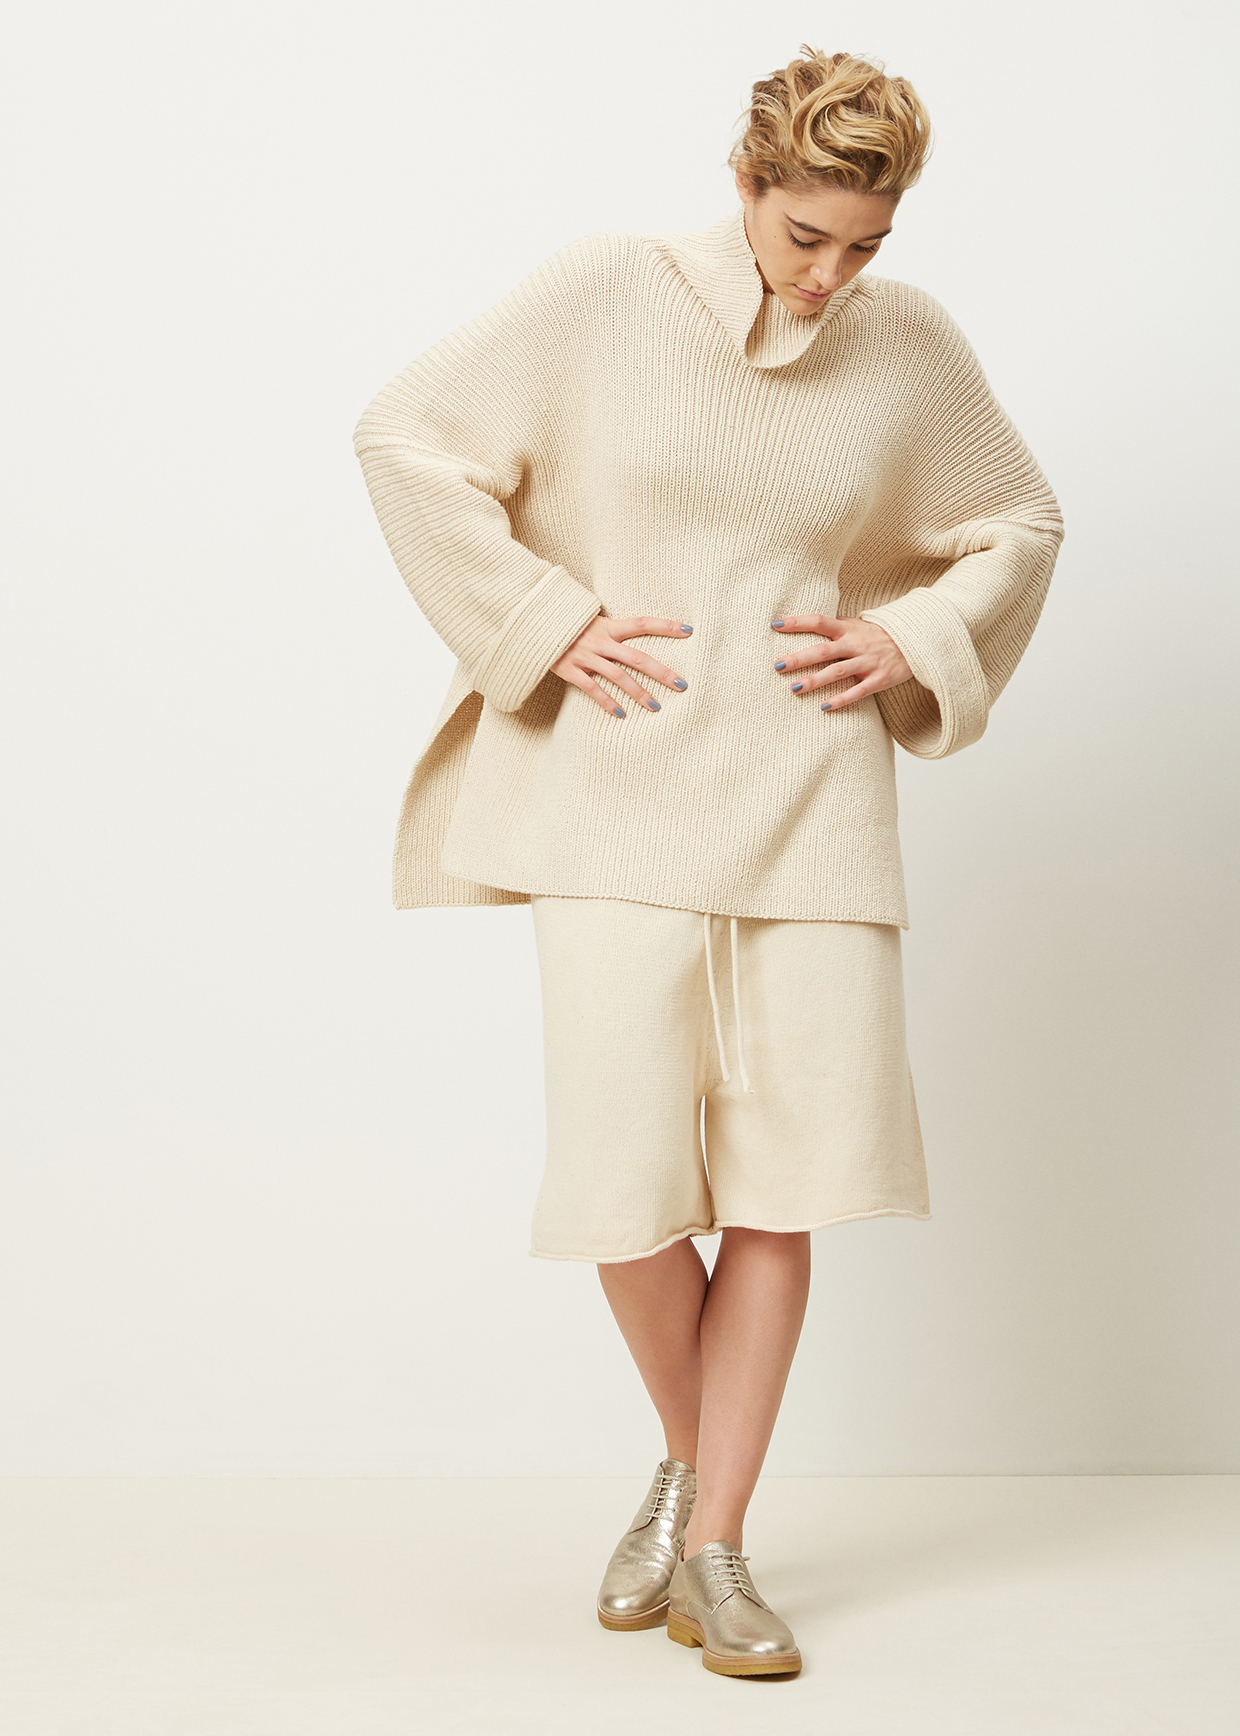 6cc9bab26d801f Lauren Manoogian Crudo Rib Turtleneck in Natural - Lyst